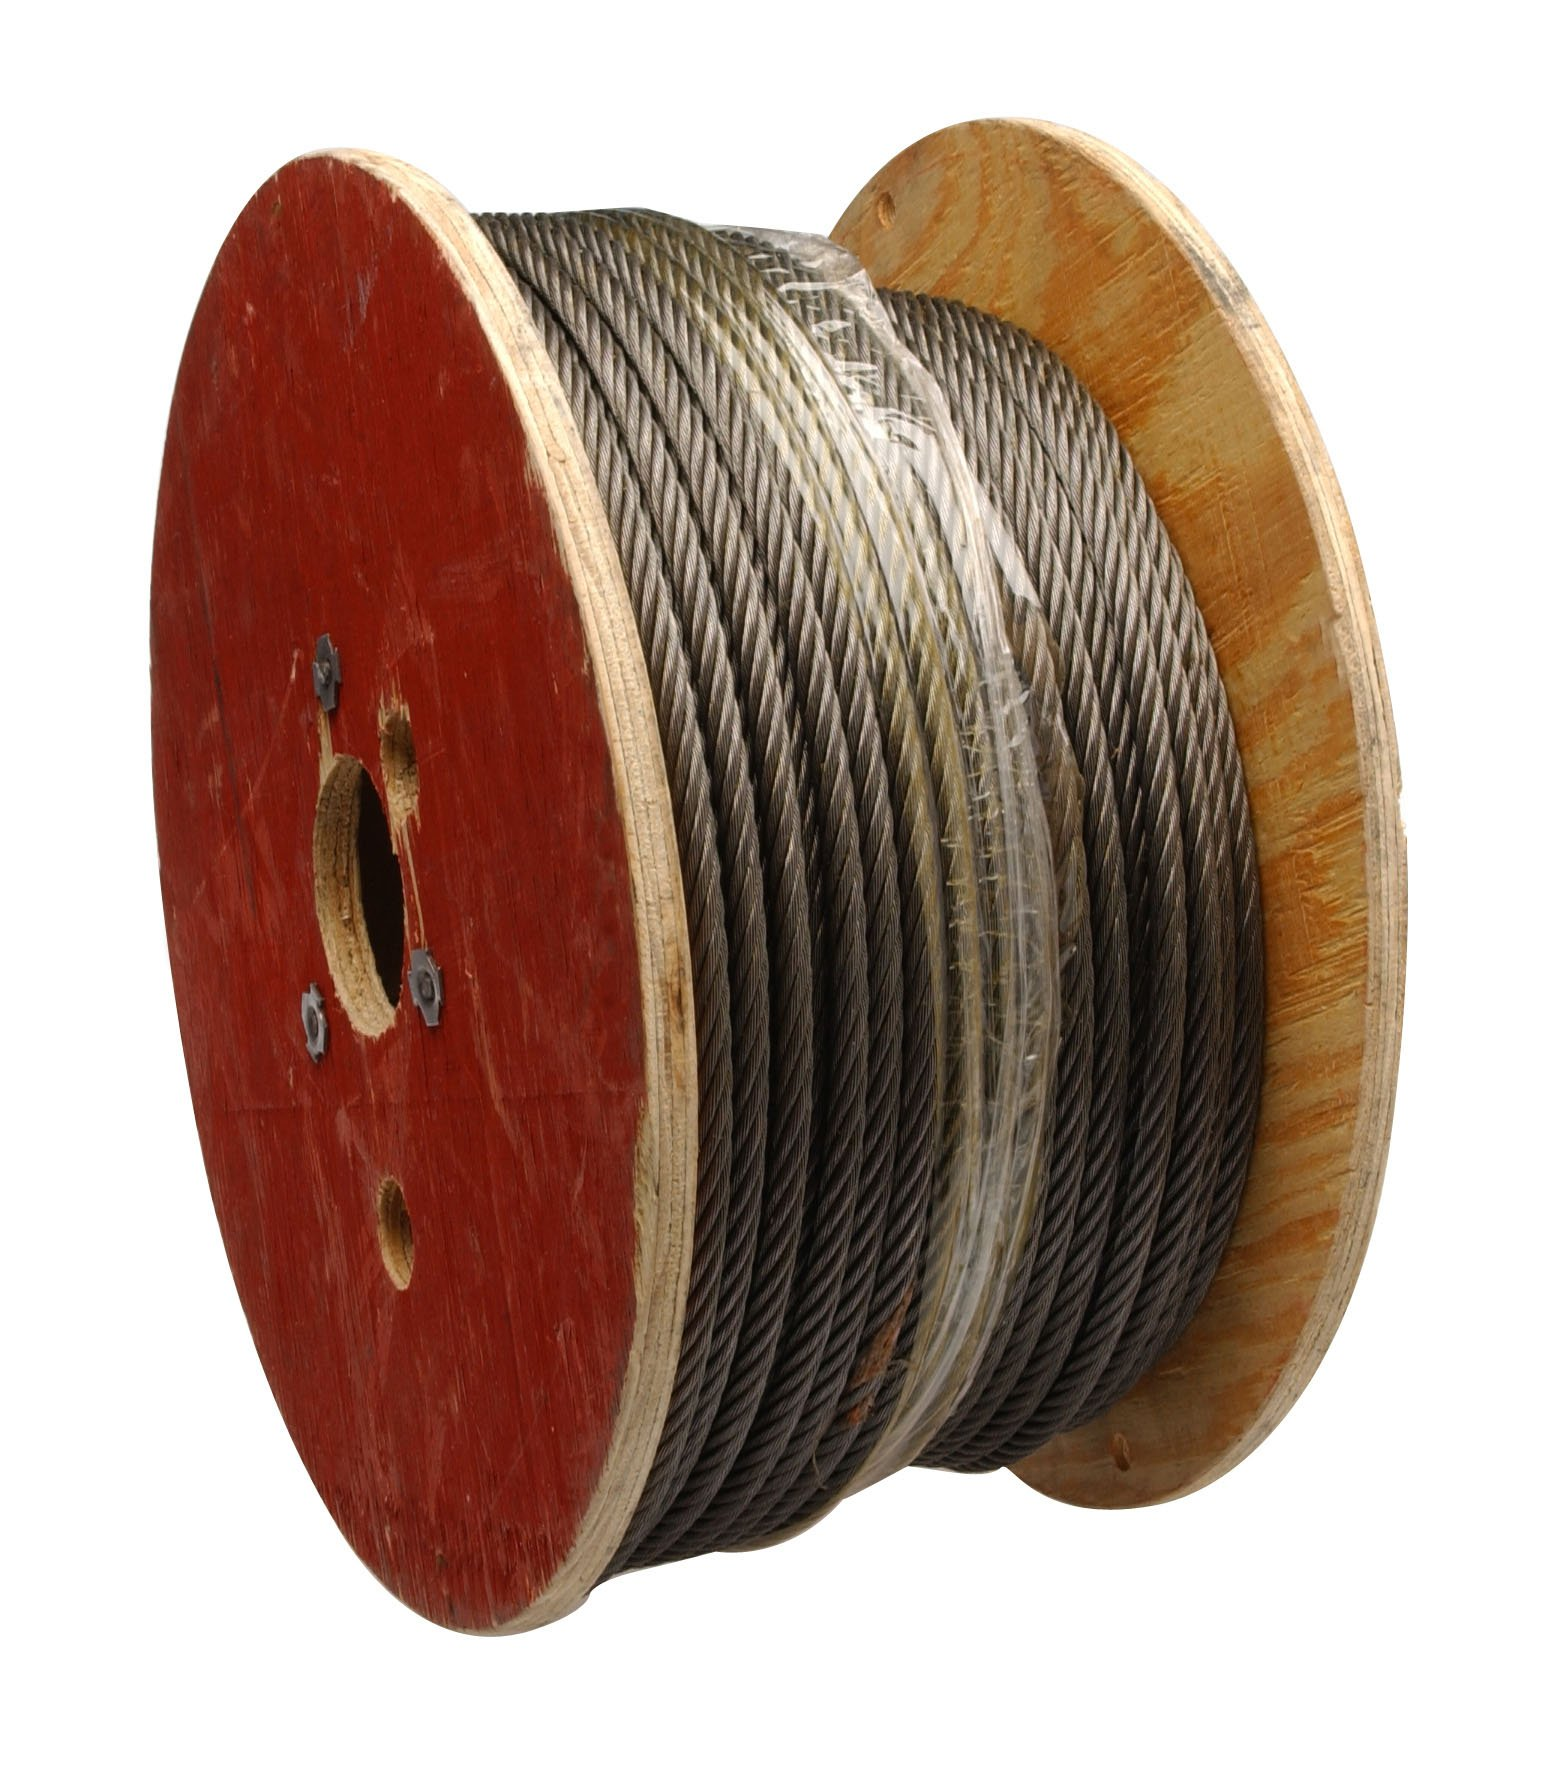 Steel Wire Rope on Reel, 6x19 Class Fiber Core, 3/8'' Bare OD, 250' Length, 2400 lbs Breaking Strength